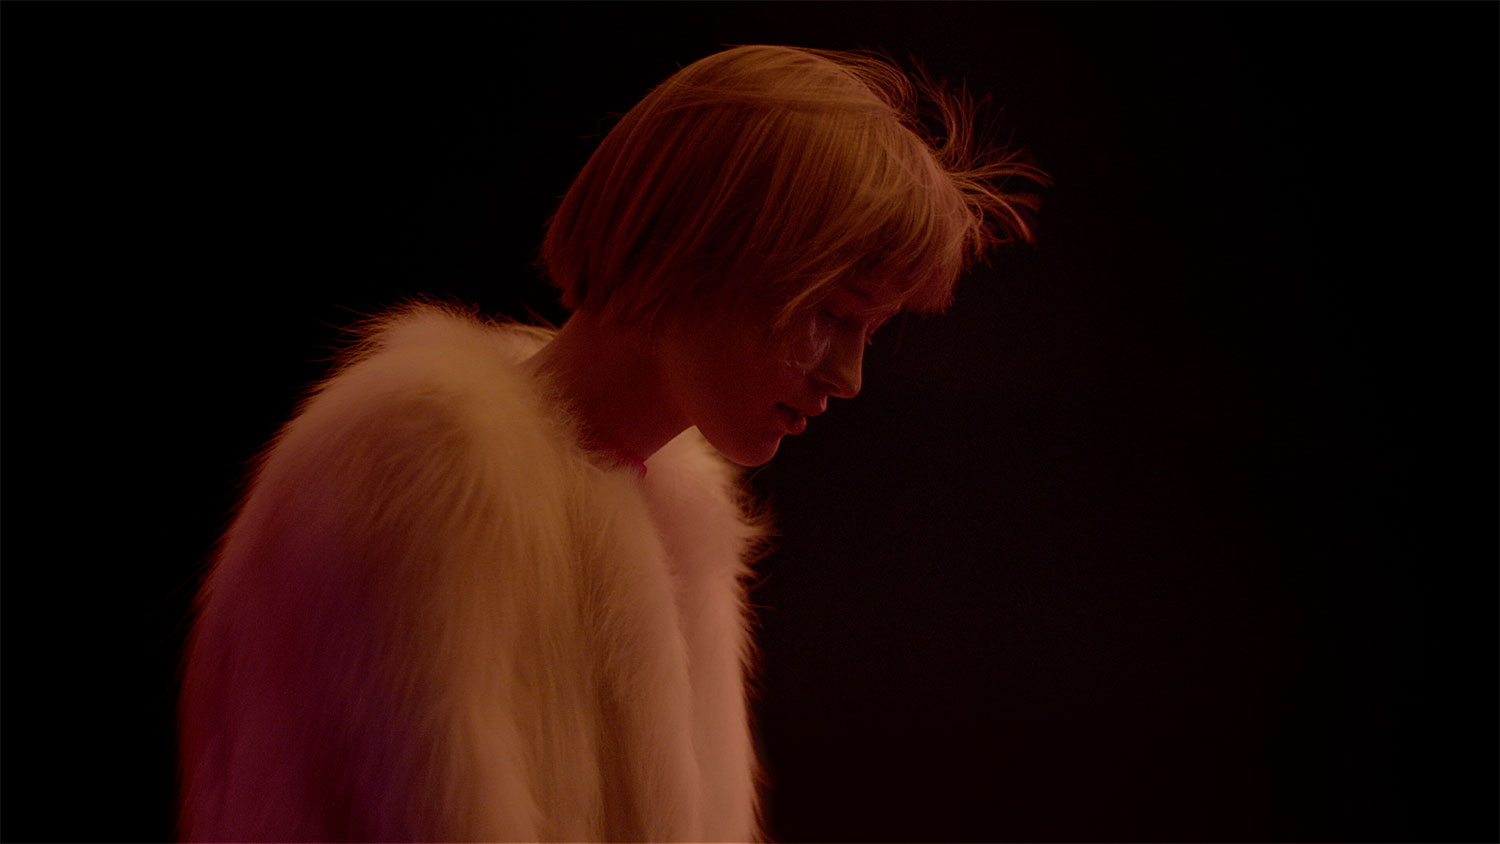 Badlands: Alexander Epikhov's short is a hauntingly dark dream you cannot wake from